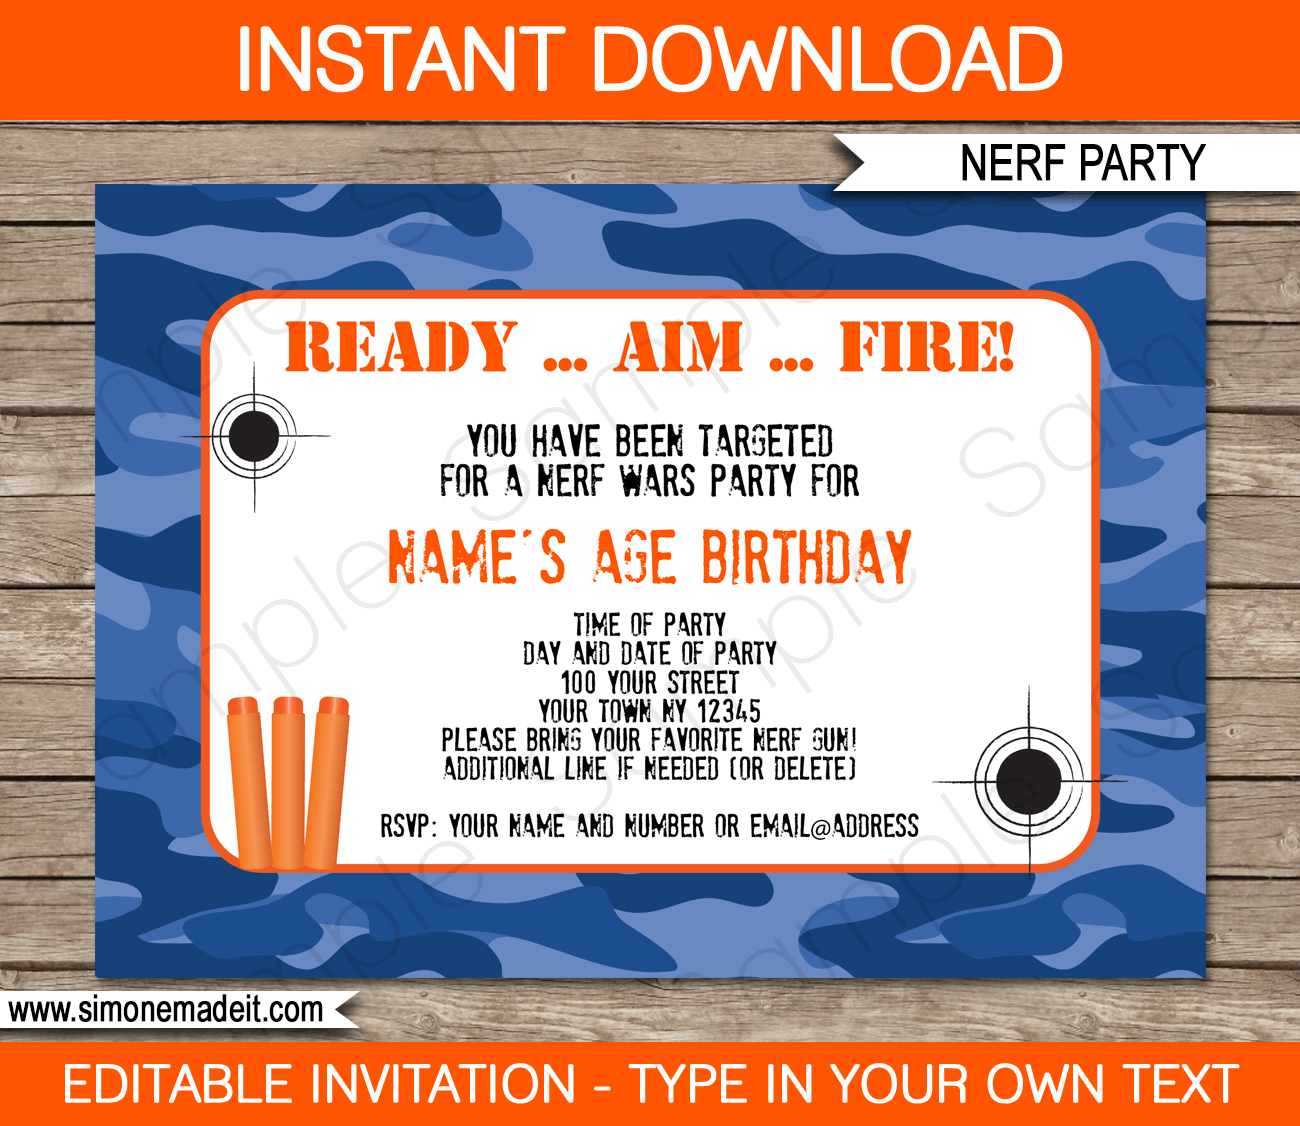 Nerf birthday party invitations editable template blue camo nerf birthday party invitations blue camo editable printable diy template instant download stopboris